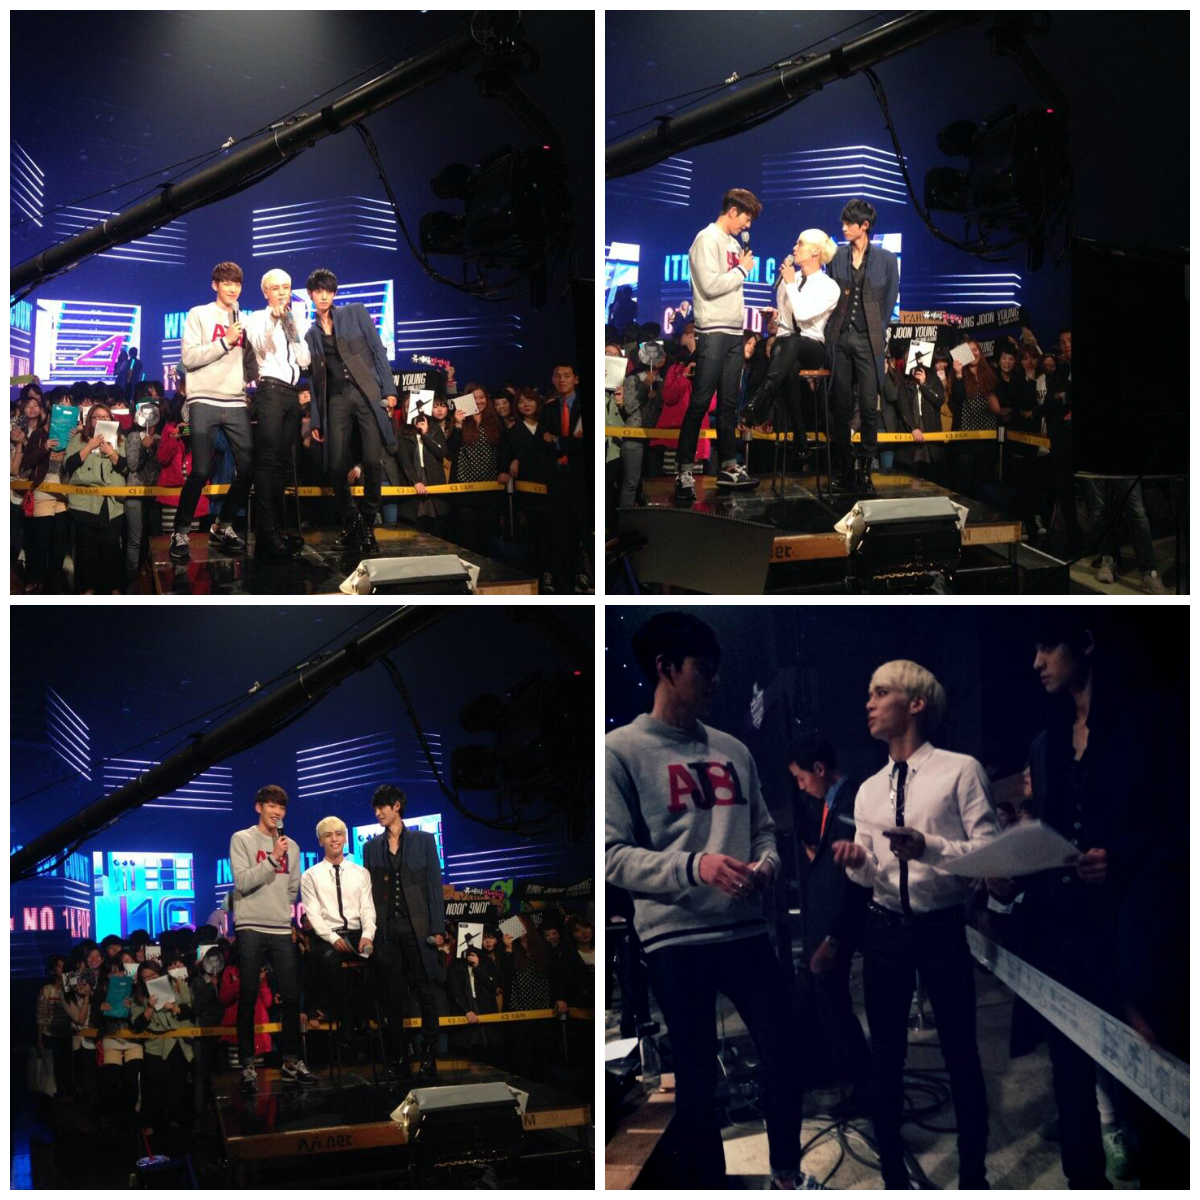 M! Countdown collage